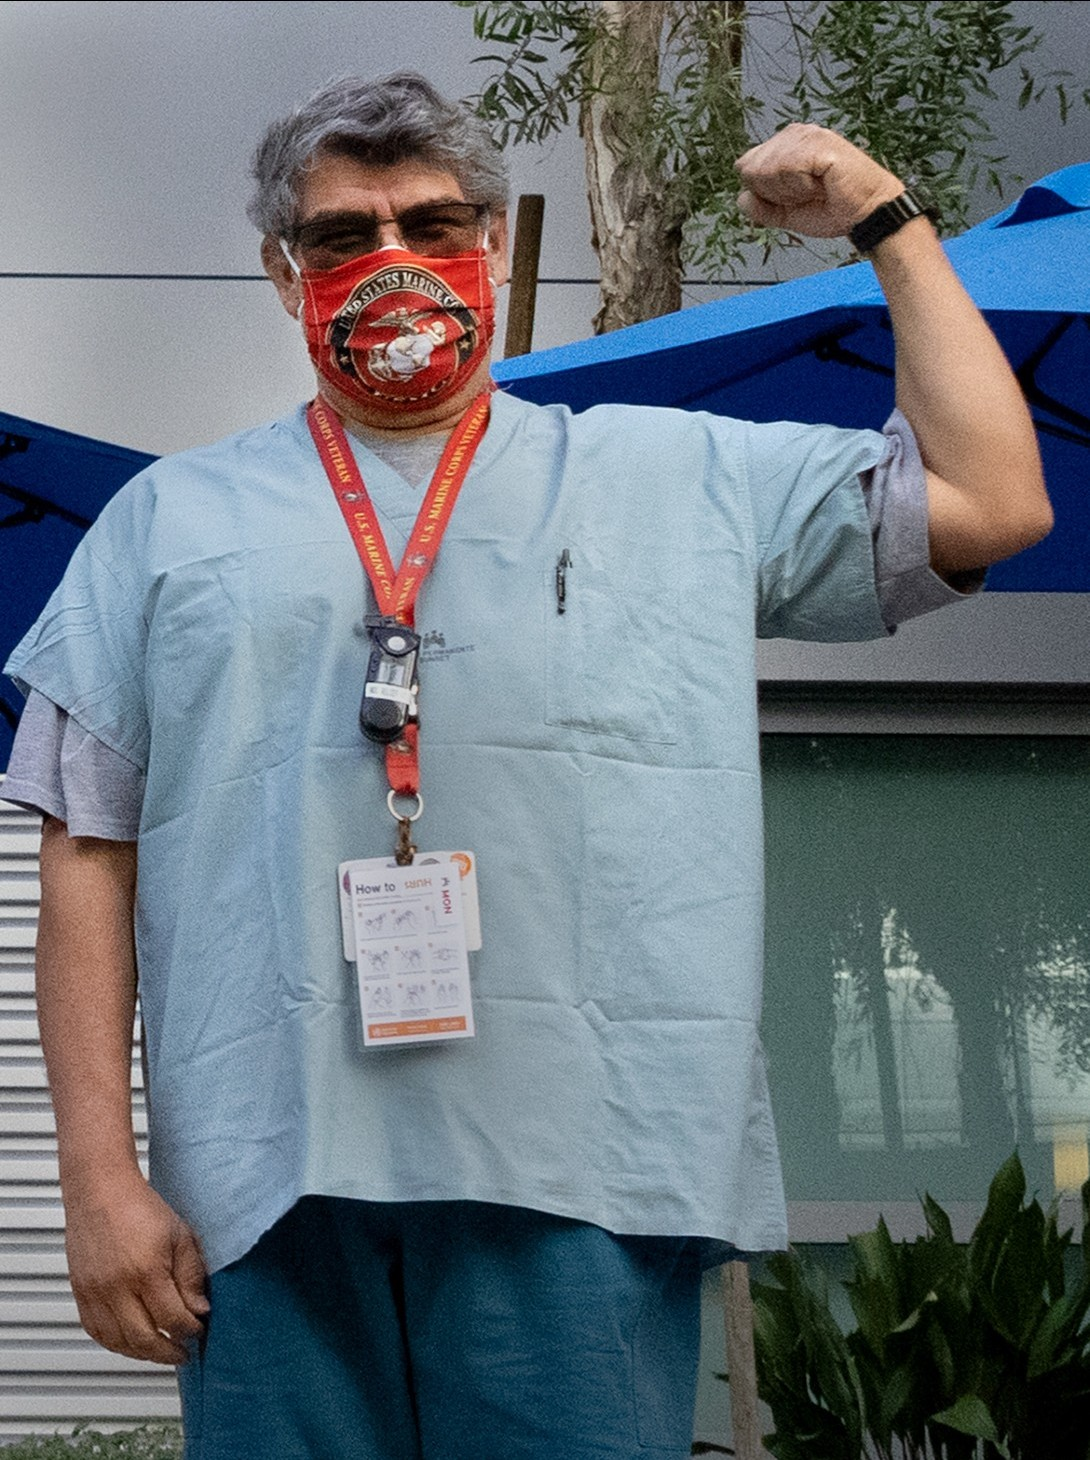 Man in scrubs, wearing a face mask, with left arm raised in a fist